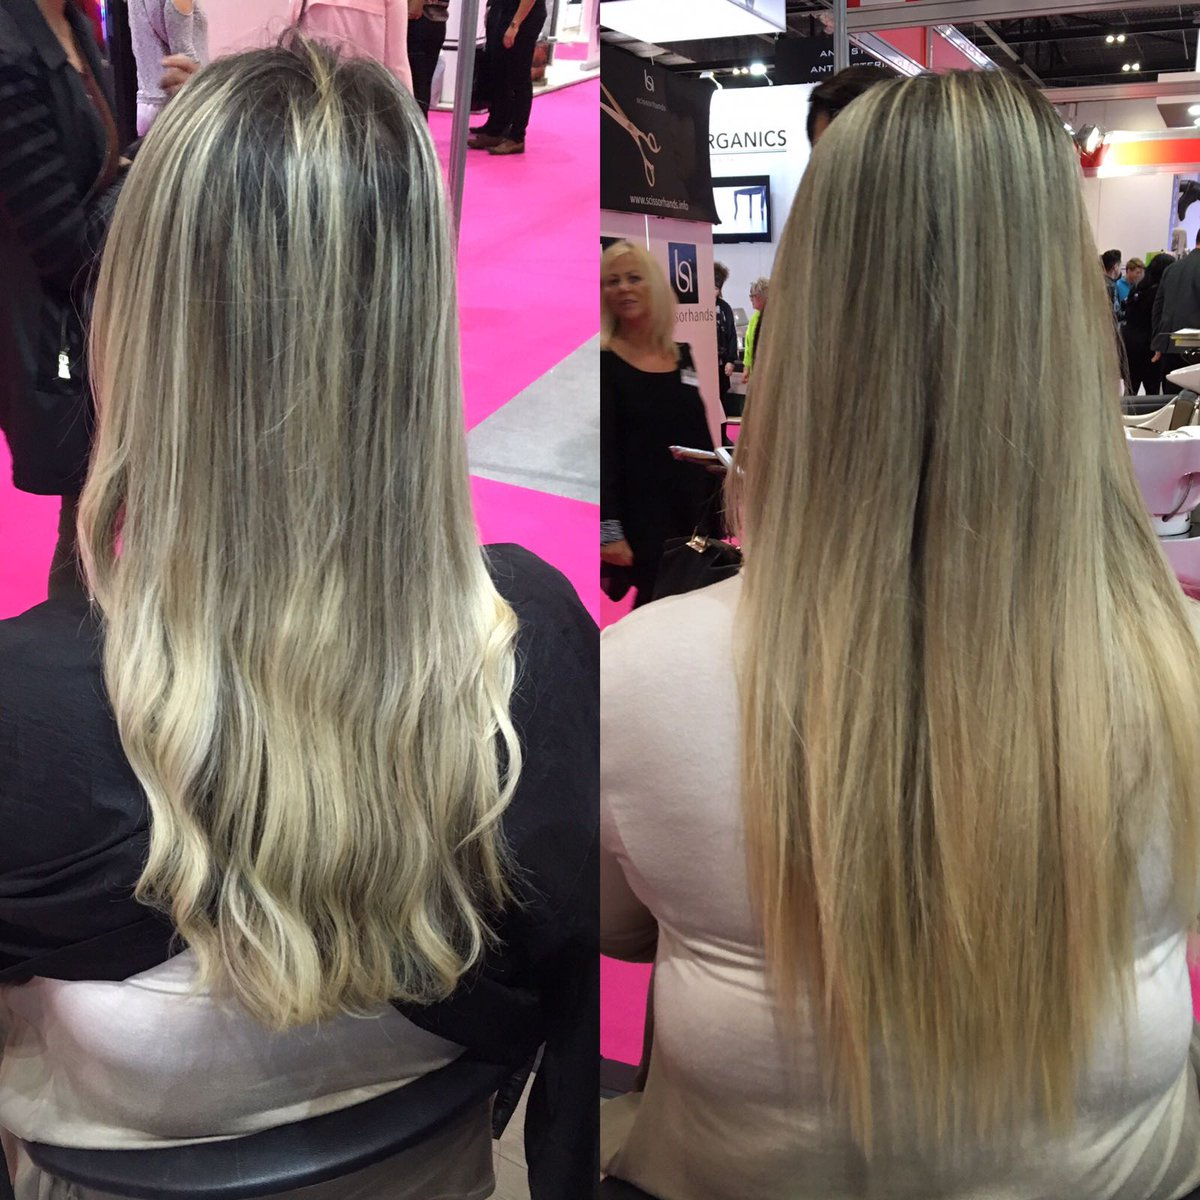 Salon international salon intl twitter for Salon international